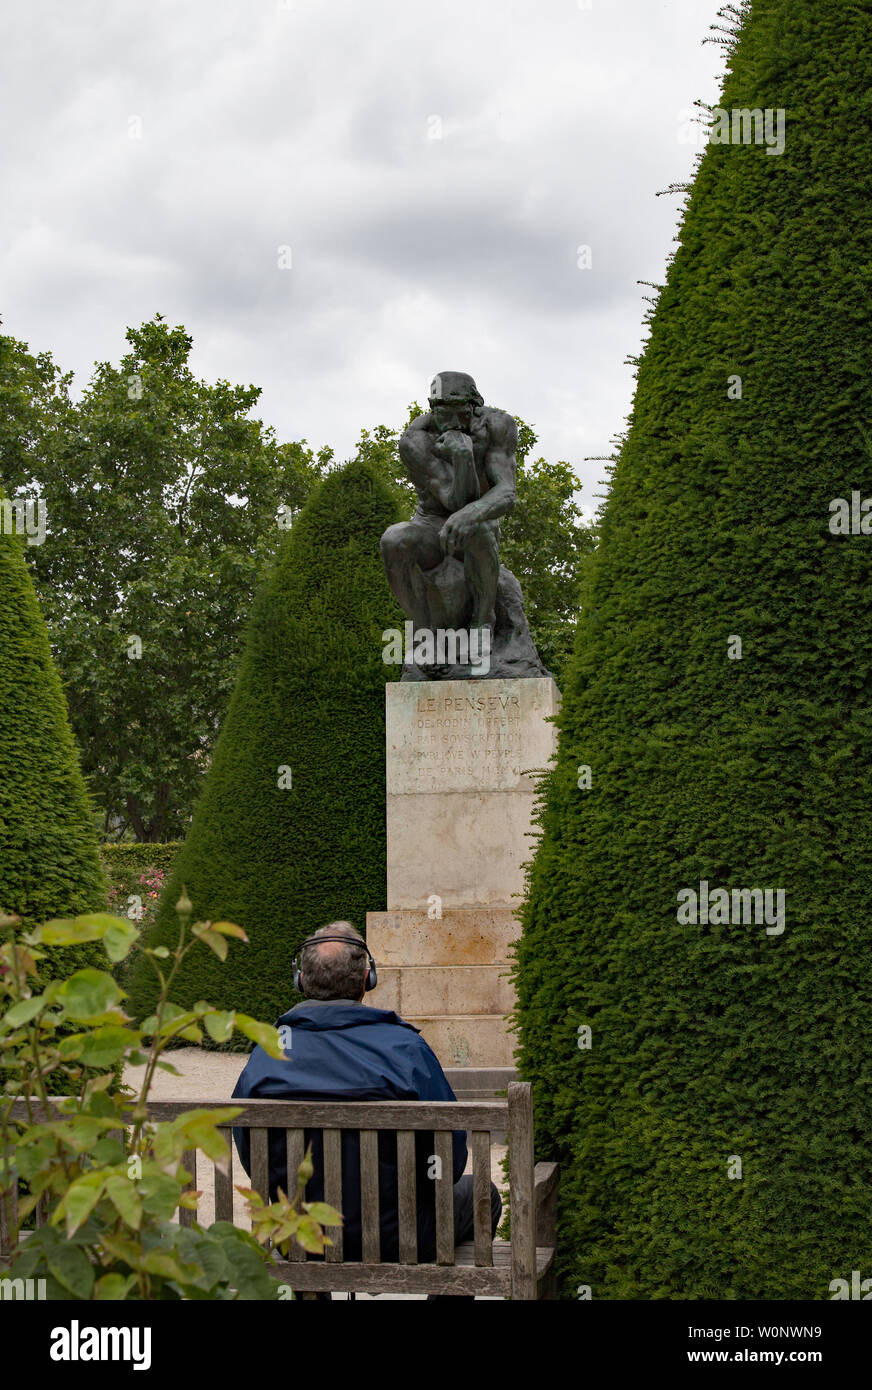 Sculptures In The Garden At The Rodin Museum In Paris France Stock